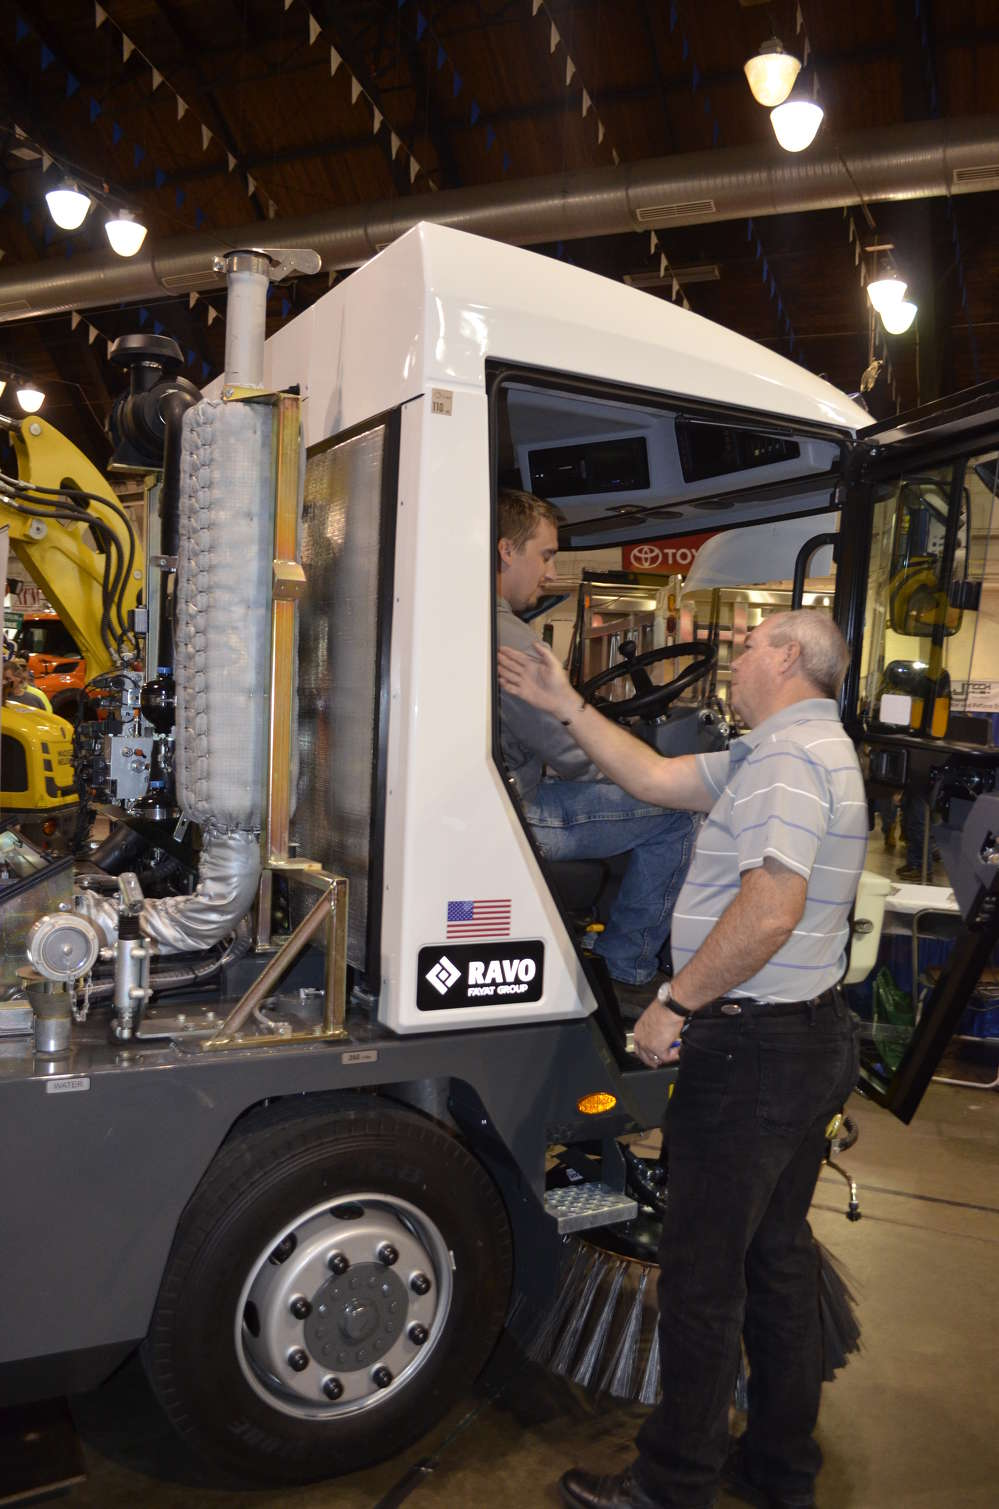 Attendees are able to check out the spacious cab of a RAVO sweeper available from Upstate Sweepers and Rentals.